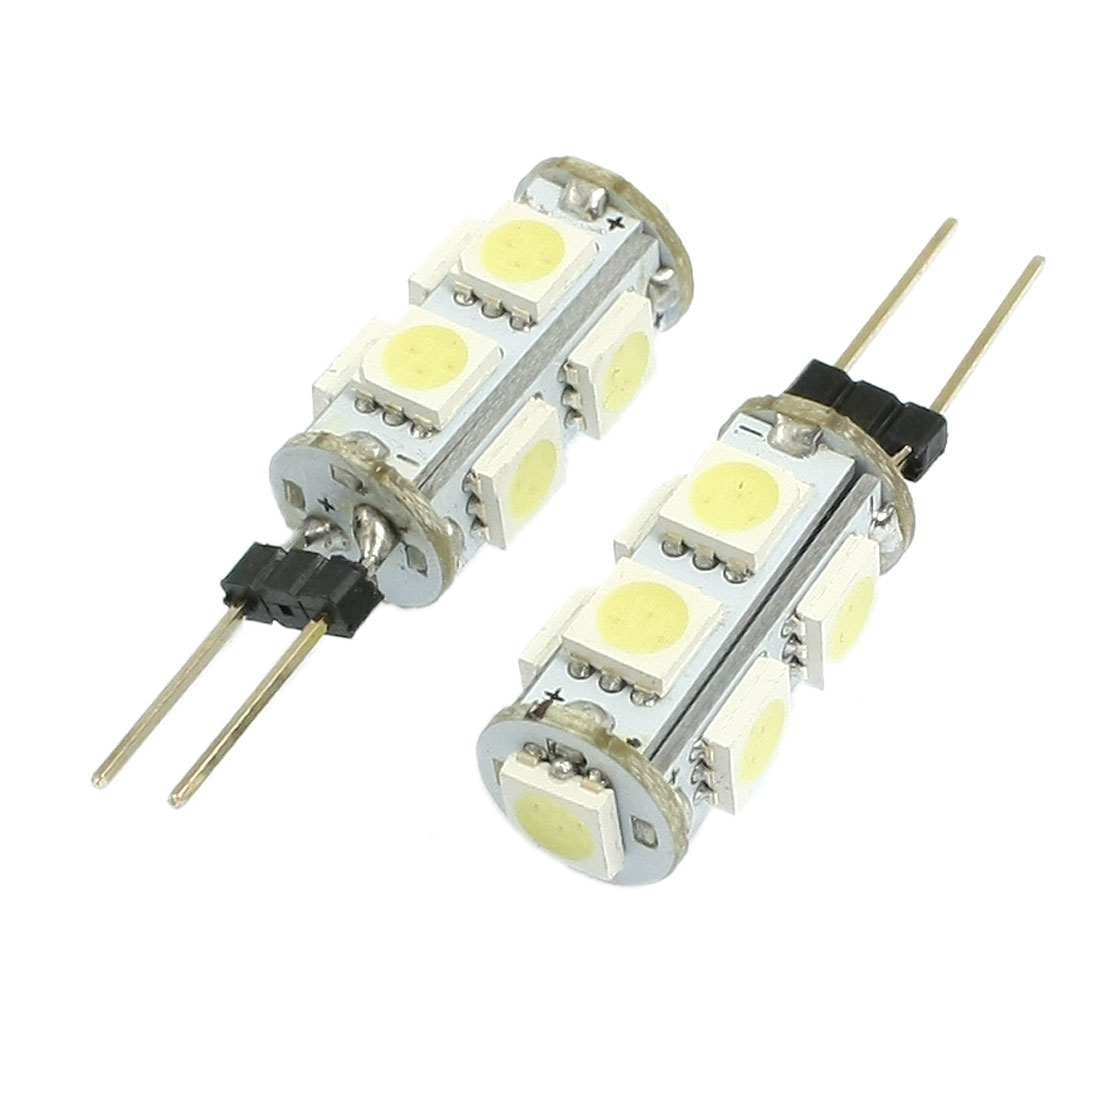 2 Pcs Vertical Pin G4 White 5050 SMD 9 LED Bulb Light Dashboard Lamp